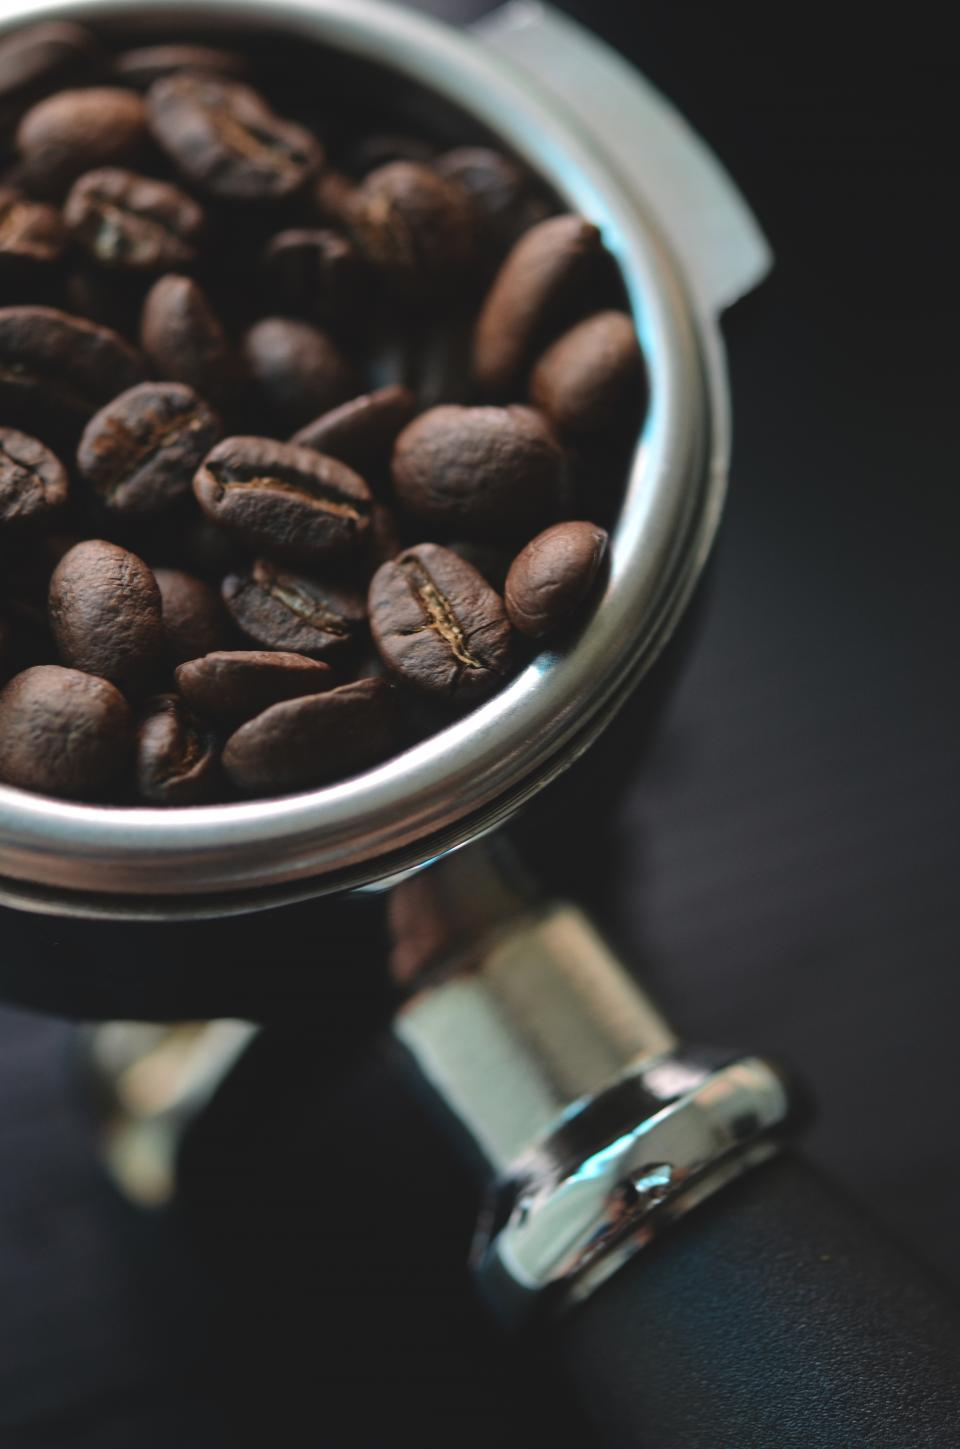 Free stock photo of coffee bean